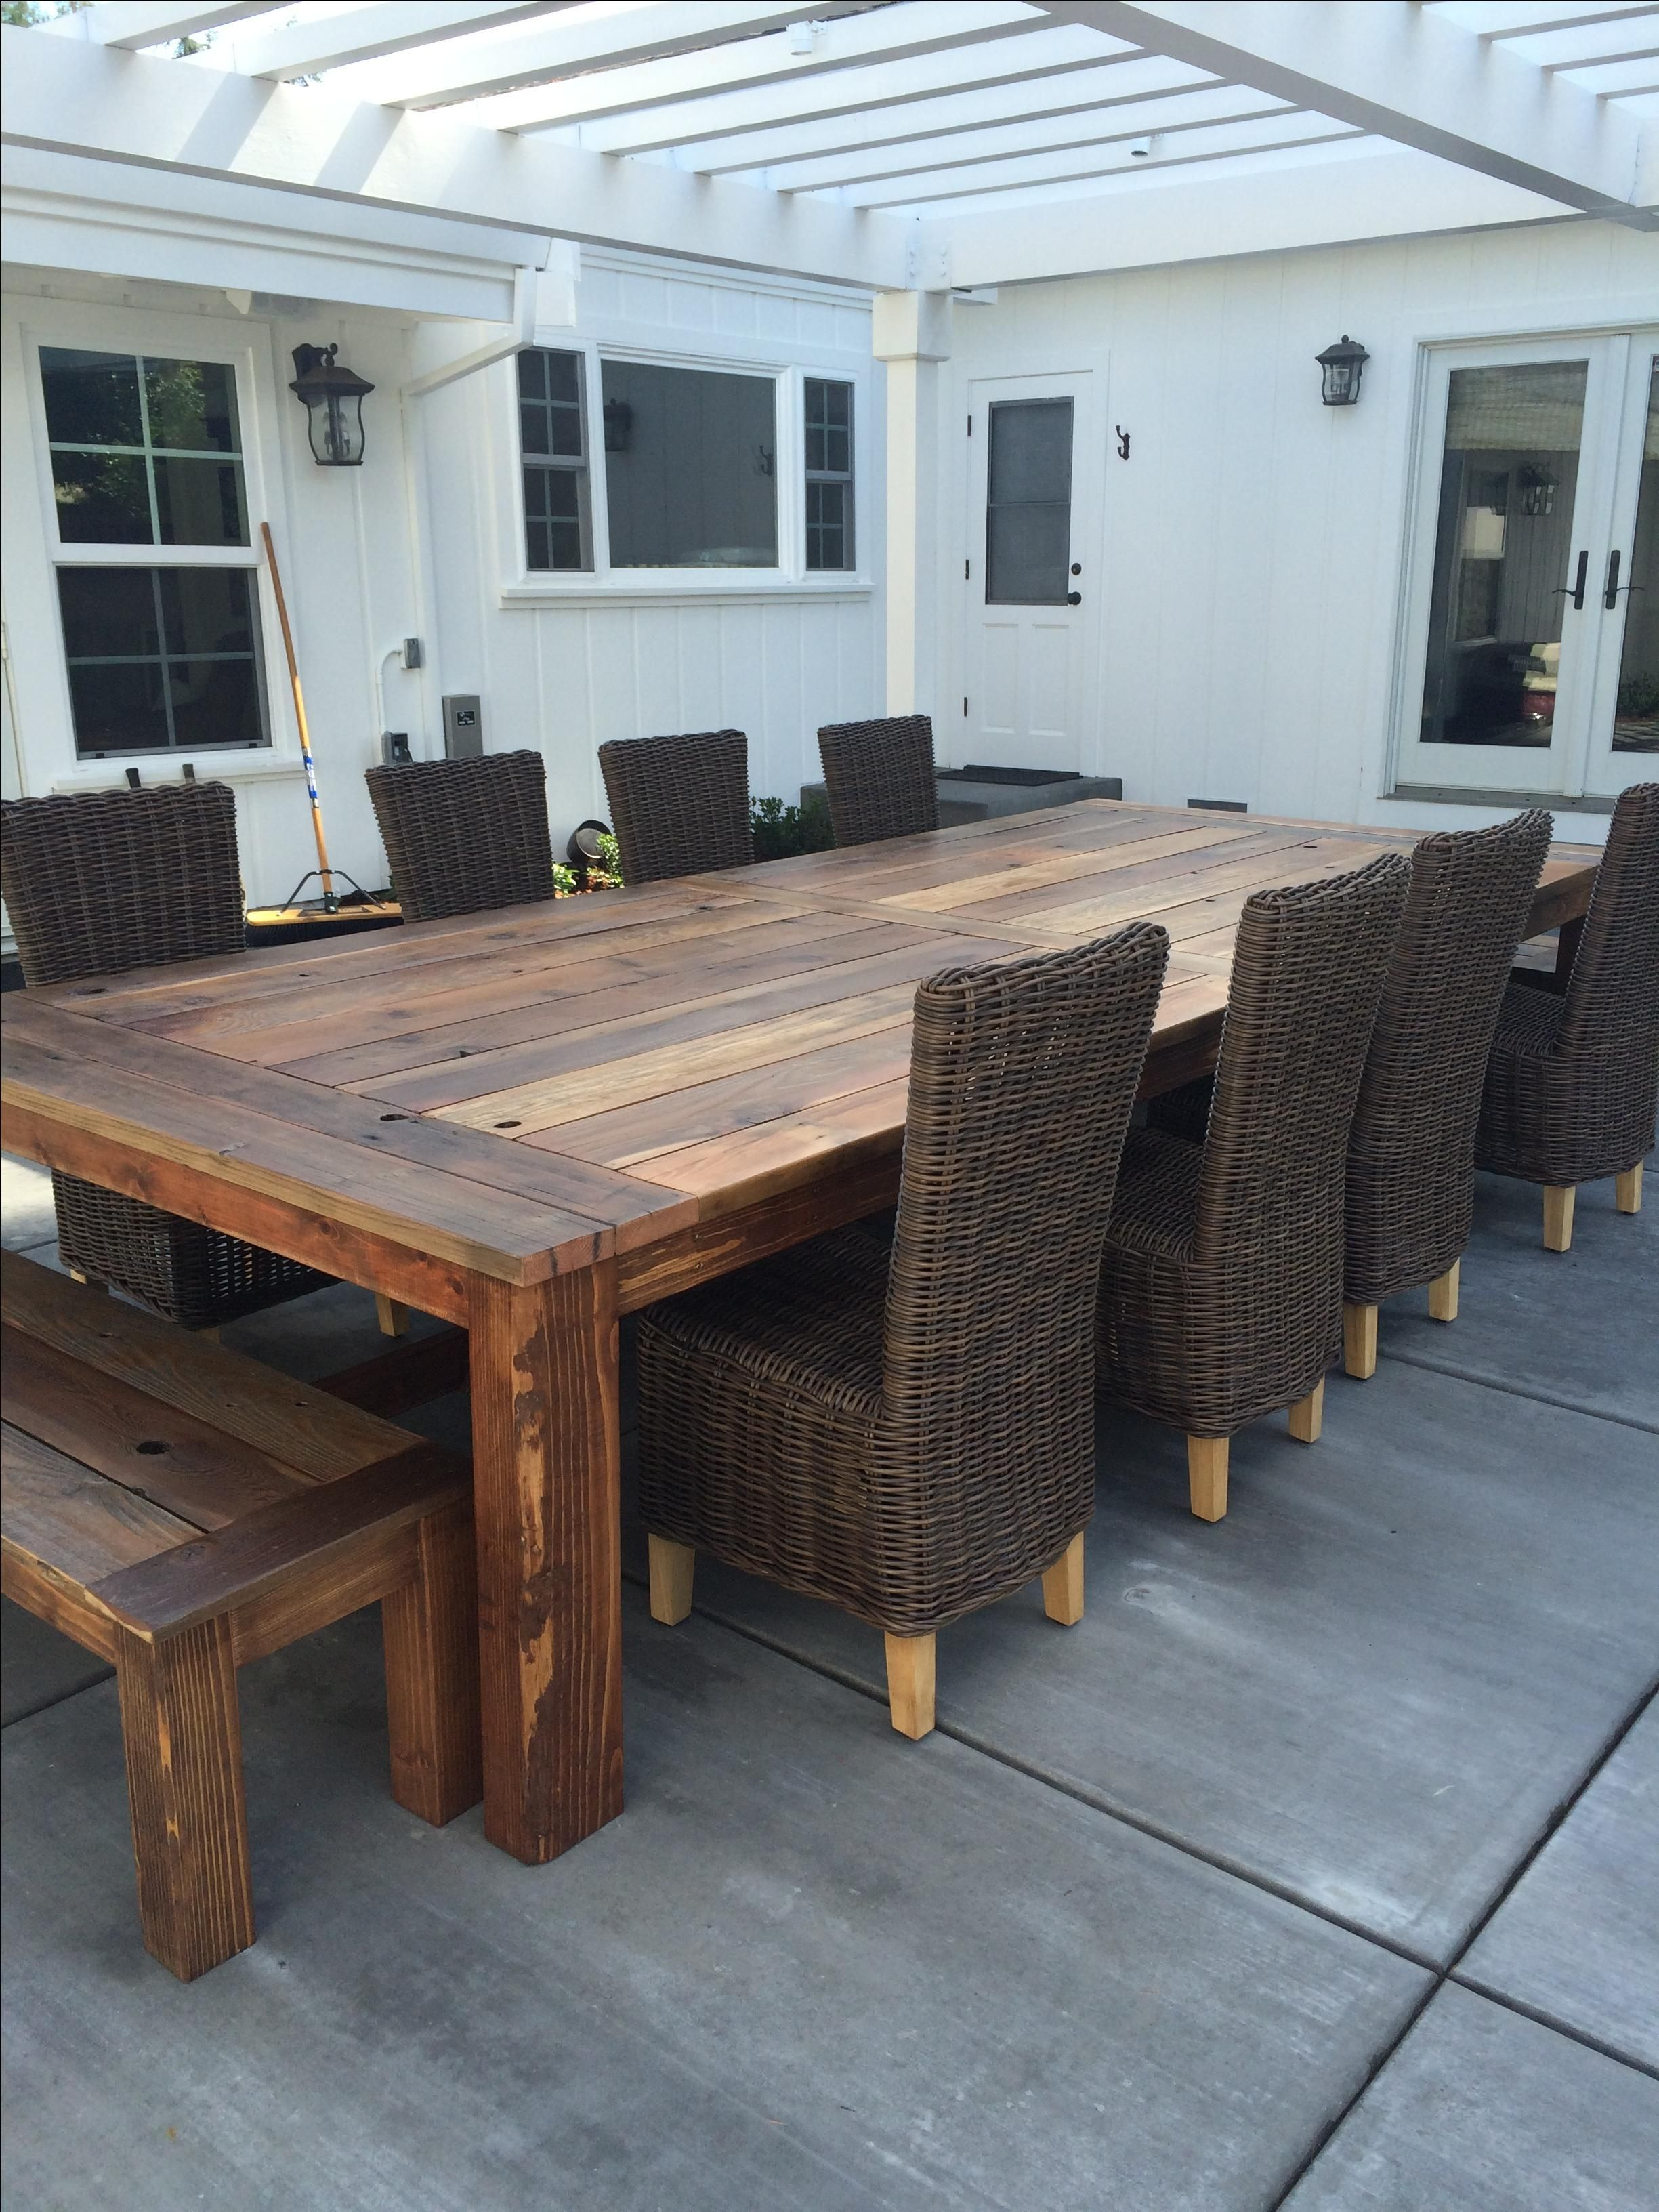 Handmade Reclaimed Wood Farm Table - Outdoor Or Indoor. by Urban ...